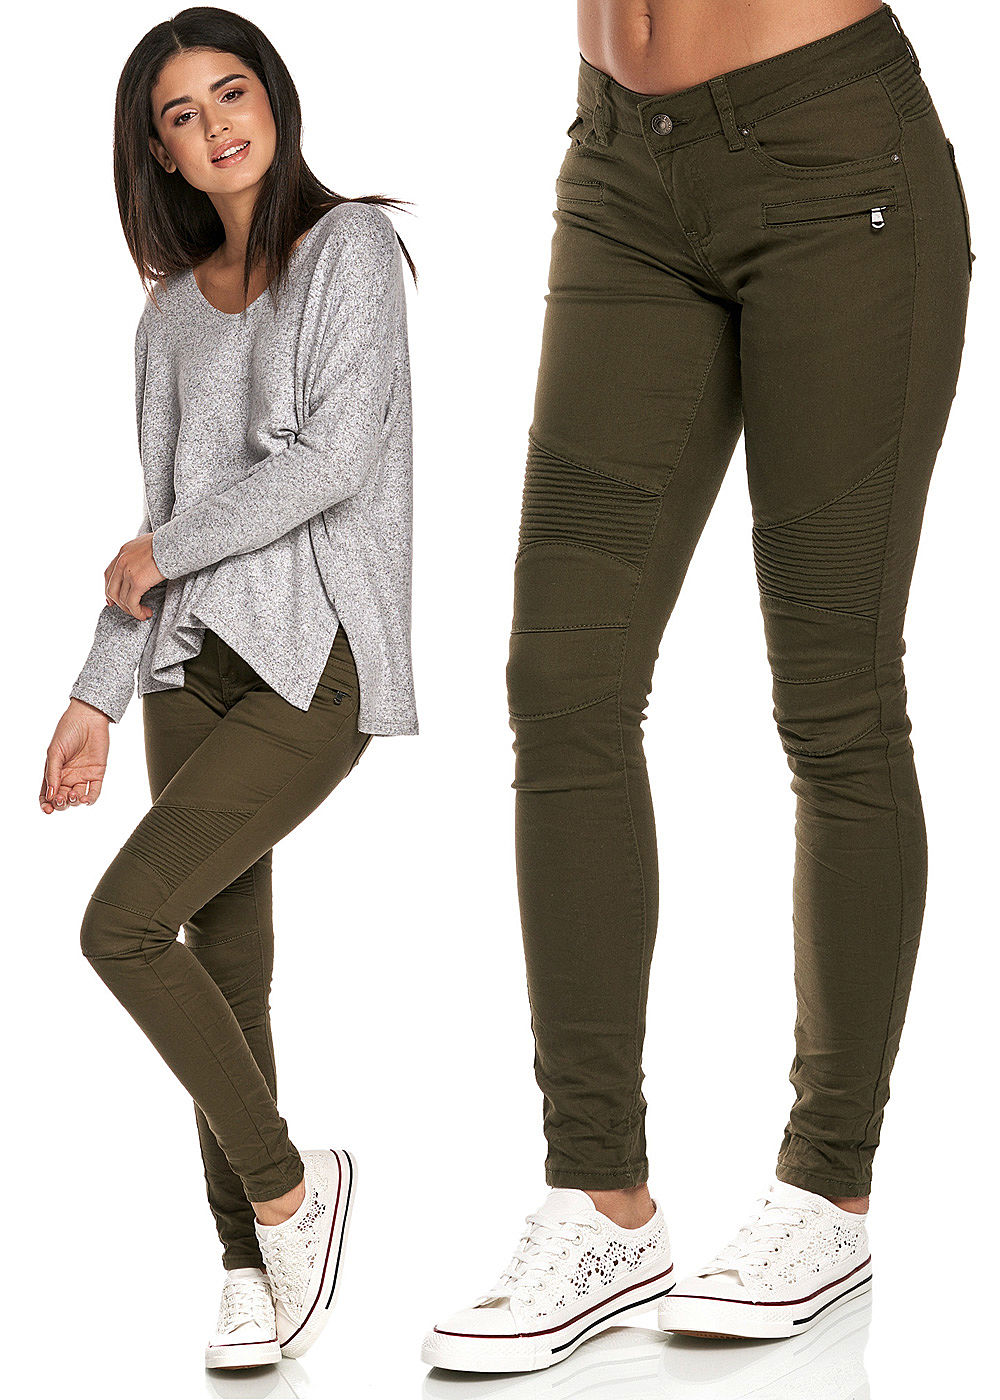 seventyseven lifestyle damen biker jeans hose 5 pockets. Black Bedroom Furniture Sets. Home Design Ideas